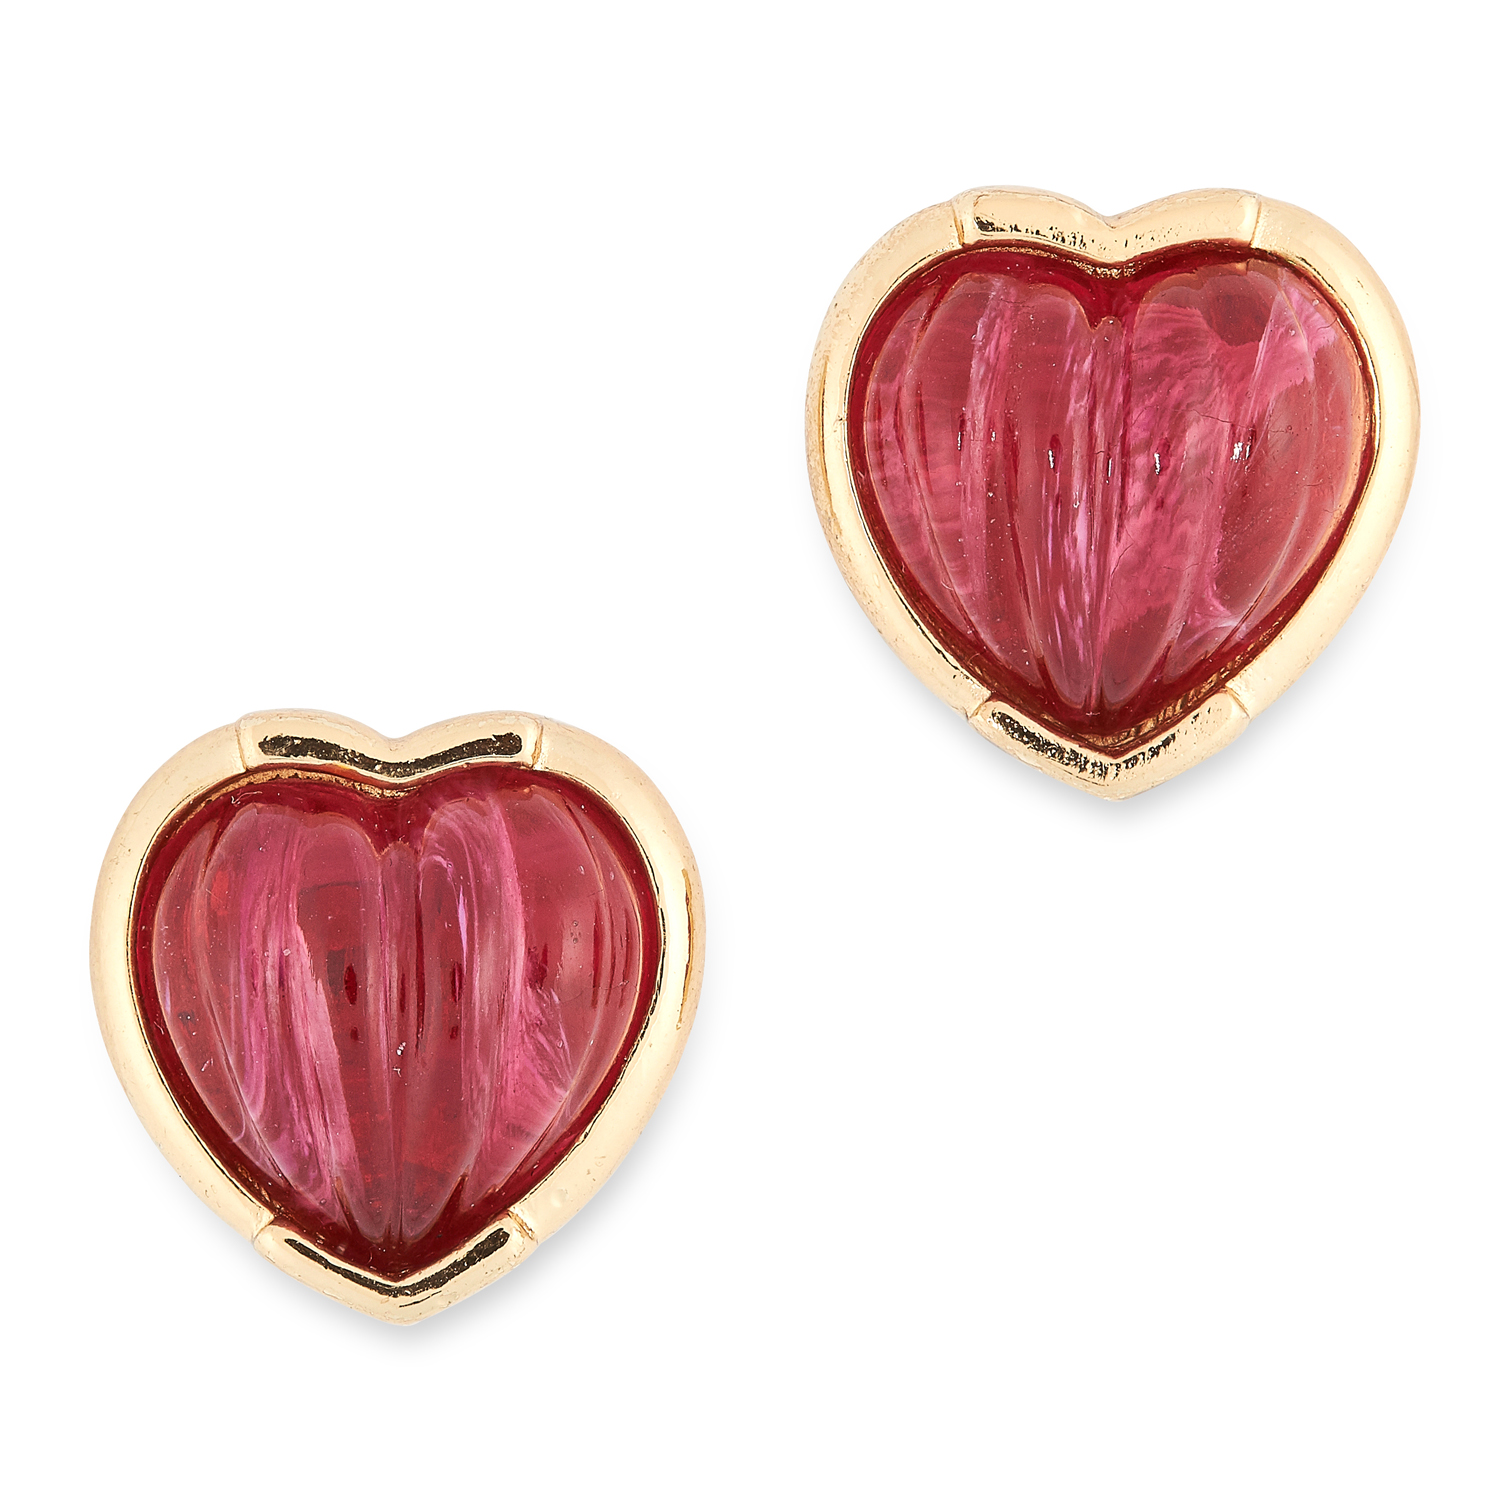 Los 84 - CRYSTAL HEART EARRINGS each set with polished red crystals, 1.7cm, 15.3g.